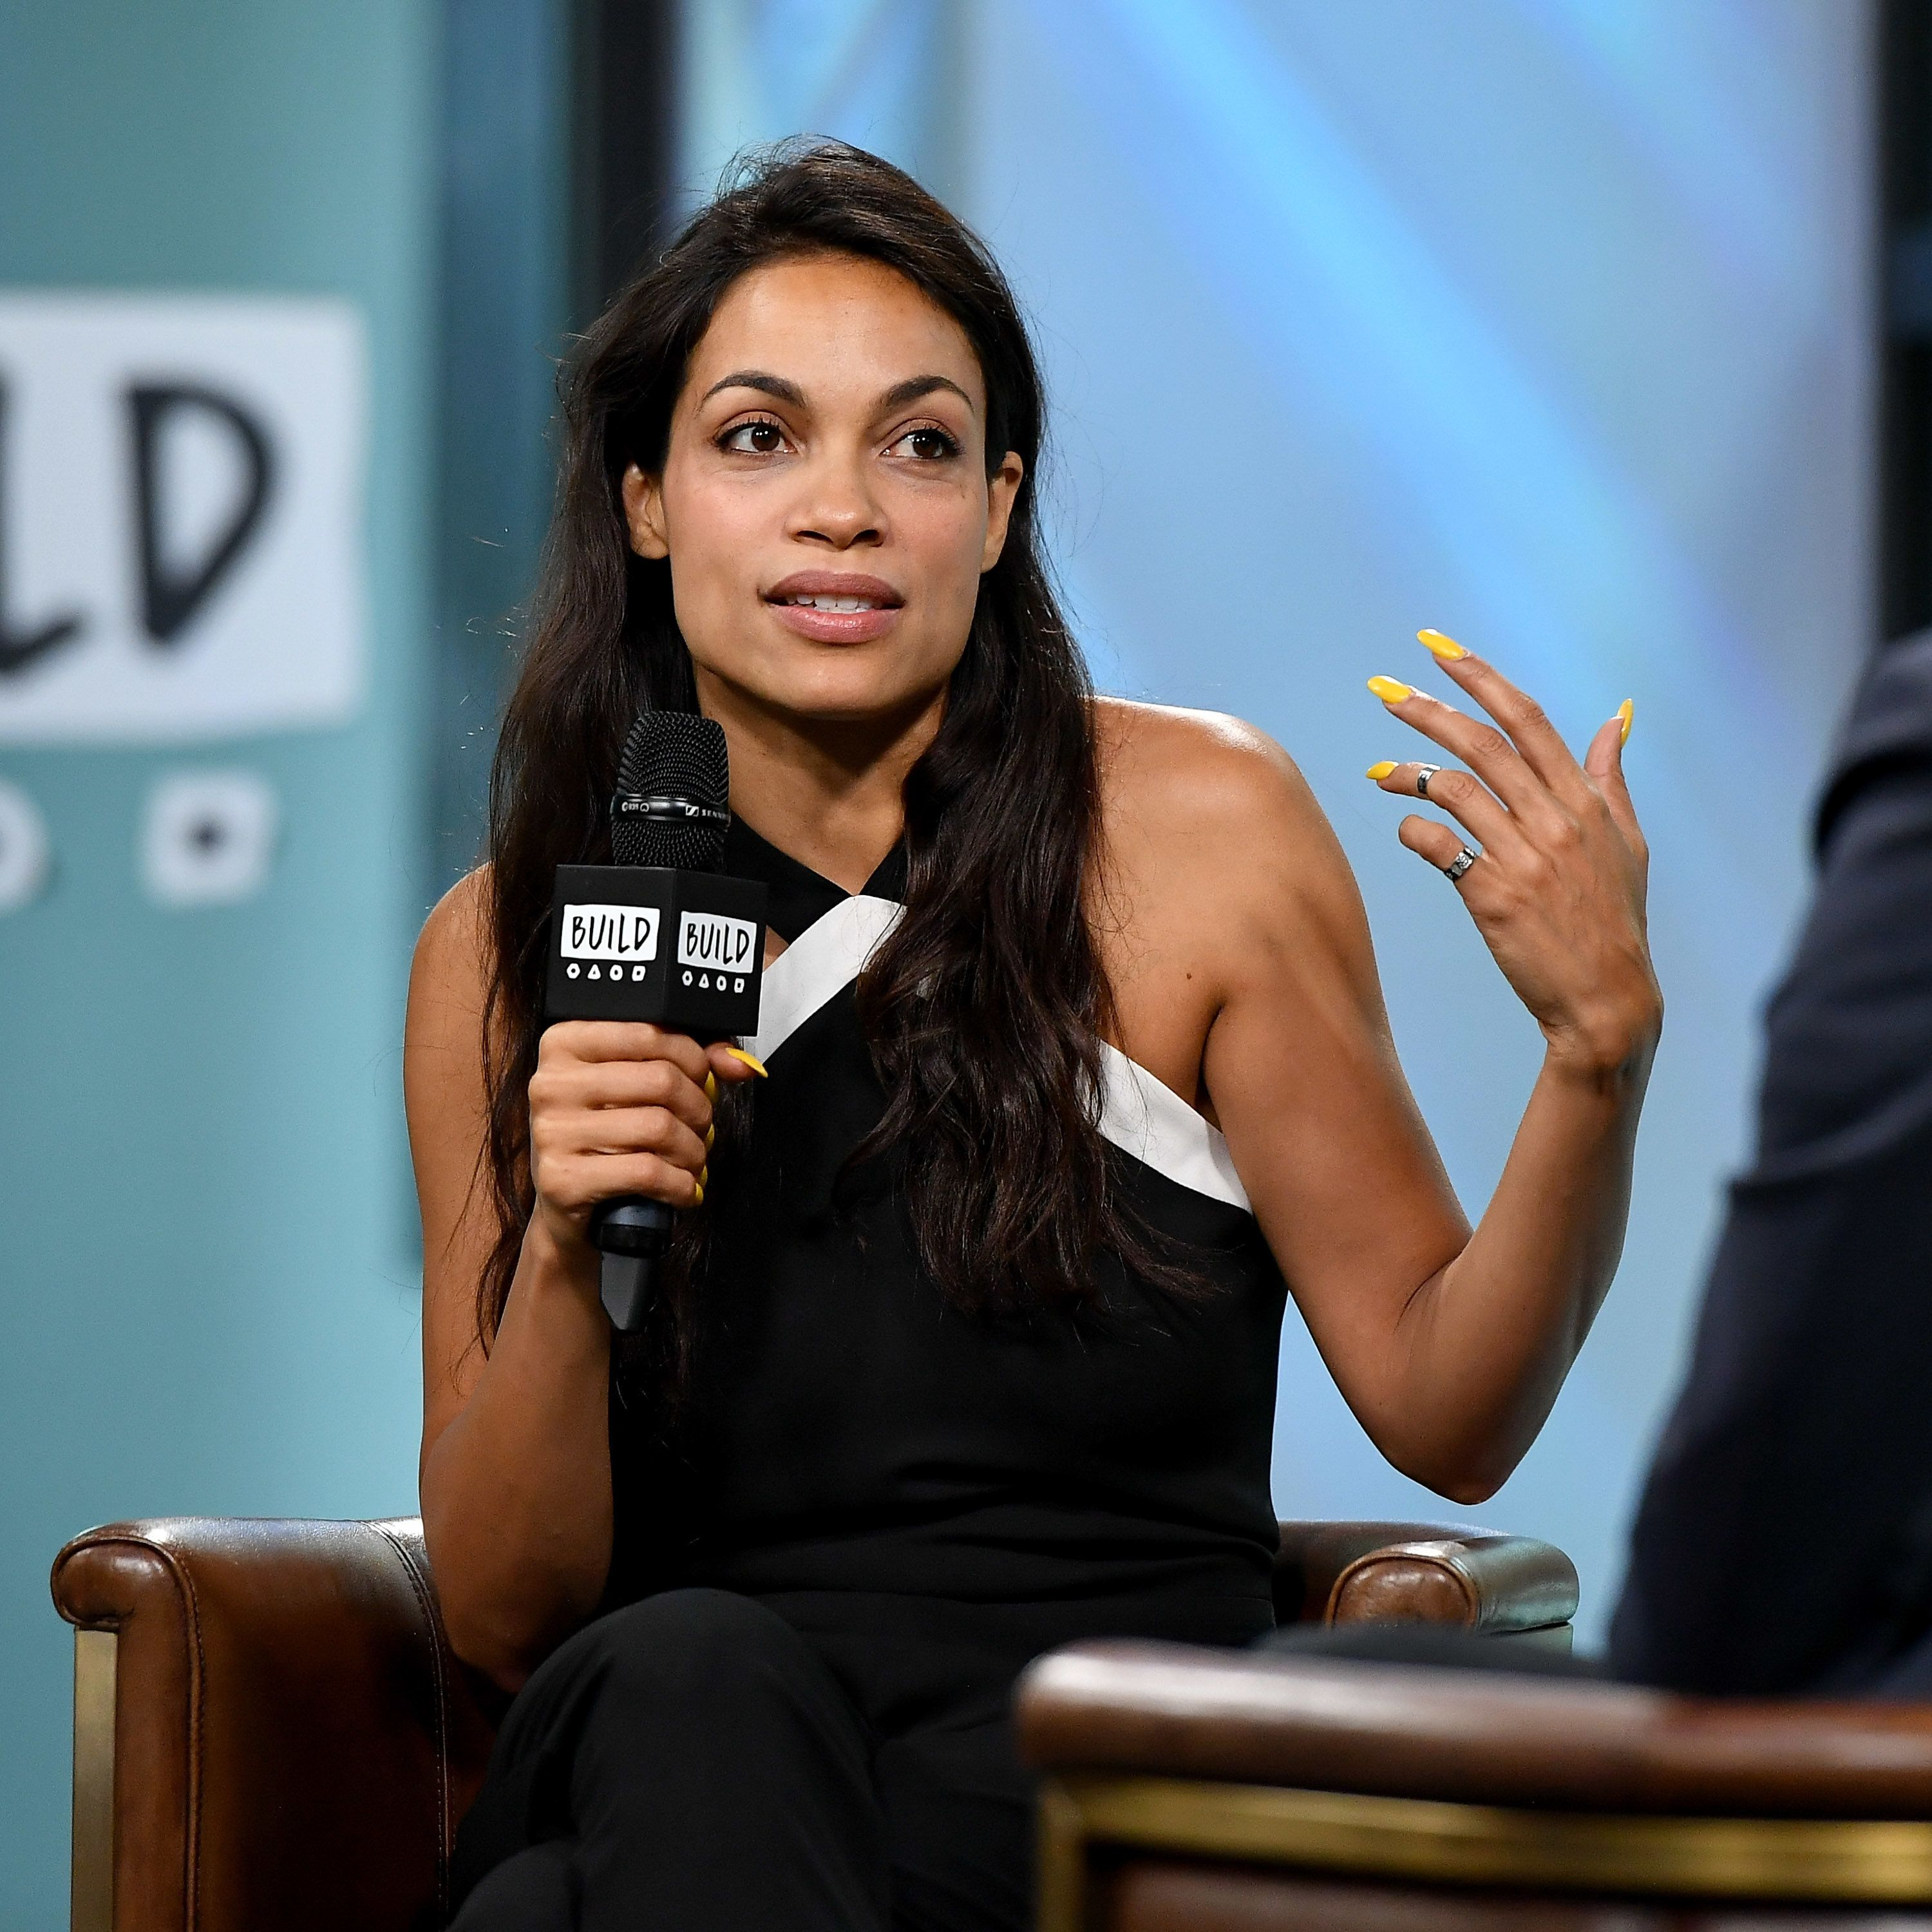 NEW YORK, NY - MAY 24:  Rosario Dawson visits the Build Series to discuss her work with the Lower Eastside Girls Club at Build Studio on May 24, 2017 in New York City.  (Photo by Dia Dipasupil/Getty Images)